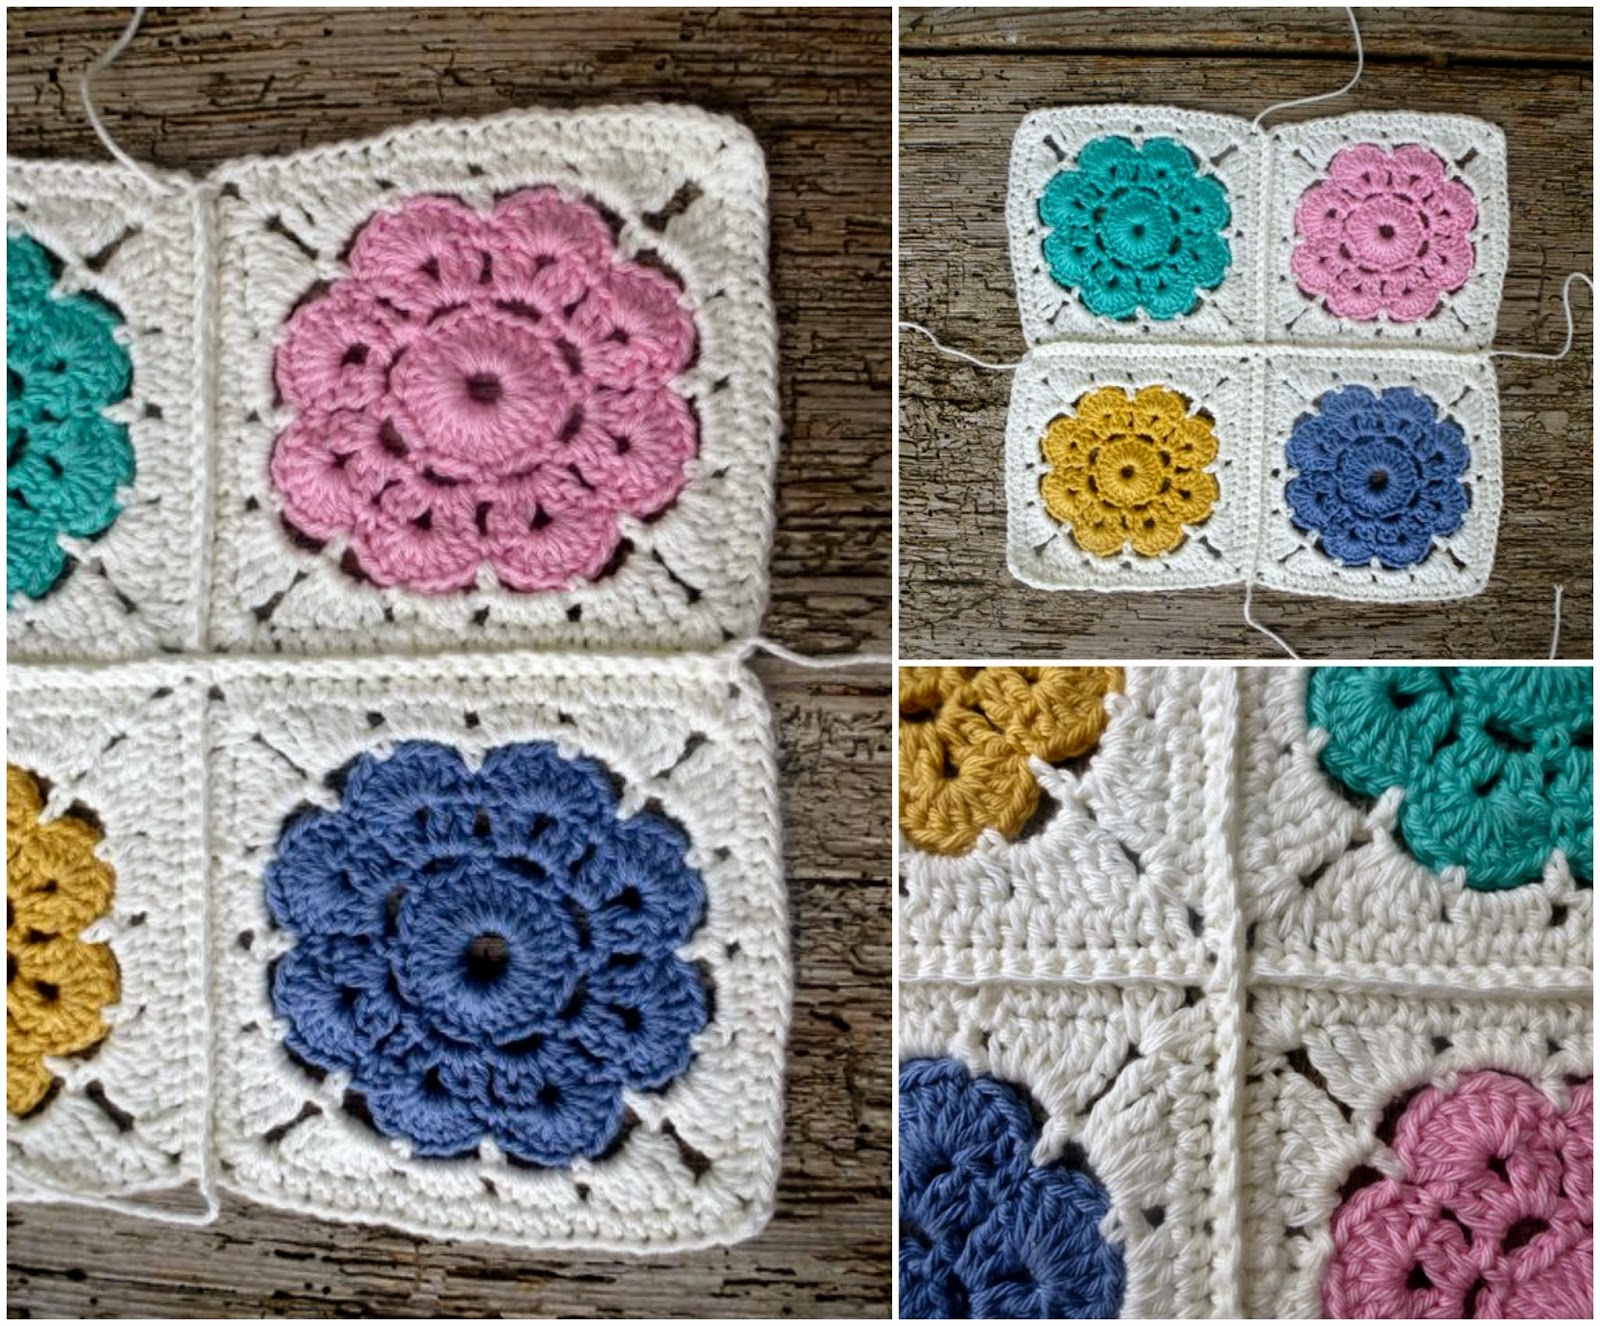 Crochet Stitches To Join Squares : My Rose Valley: How to join Maybelle Squares